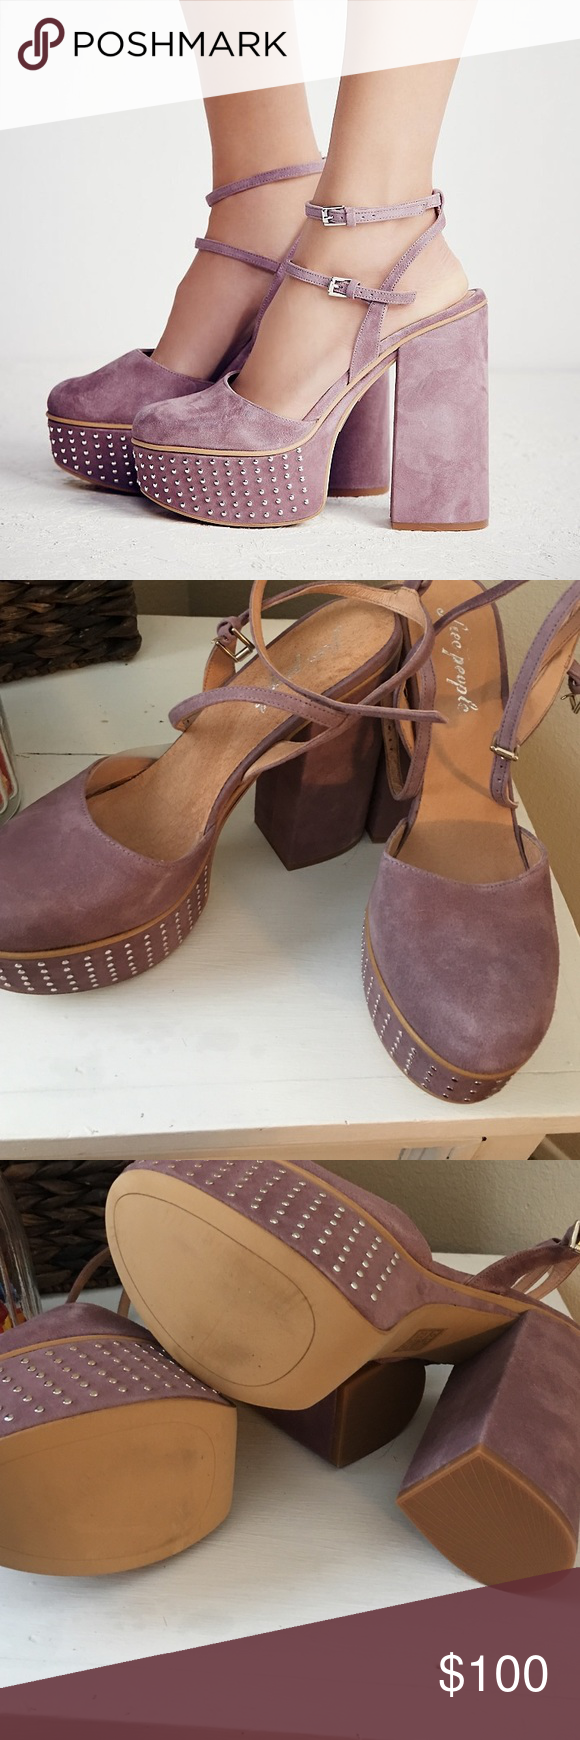 9a2b06d789 NWT free people star crossed lover platforms New in box free people star  crossed lover platforms in lavender Free People Shoes Heels